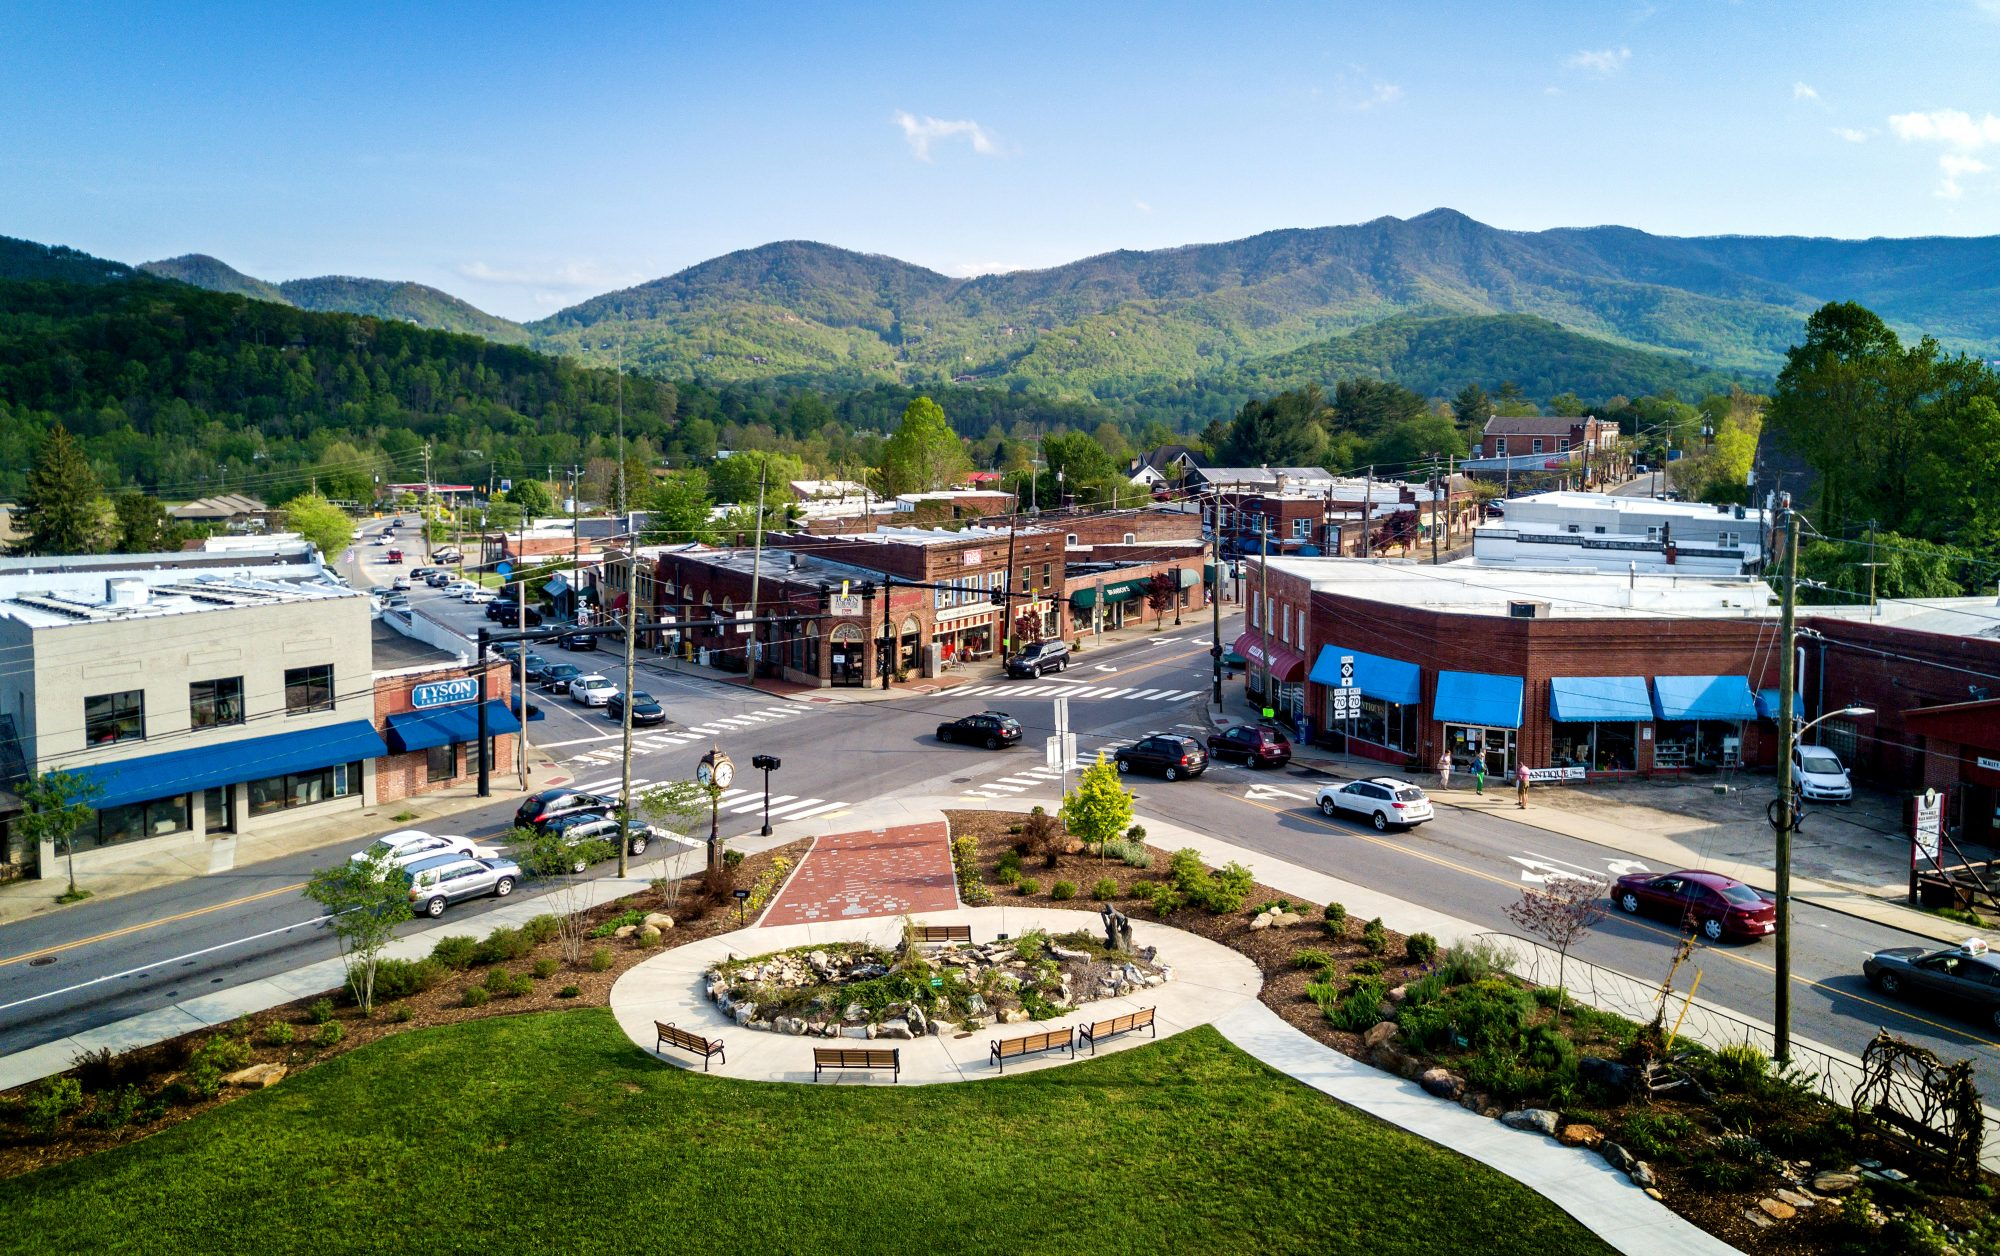 Perched in the Blue Ridge Mountains, Black Mountain is just 15 miles East of Asheville, making it an ideal day trip for anyone looking for their new favorite small town.